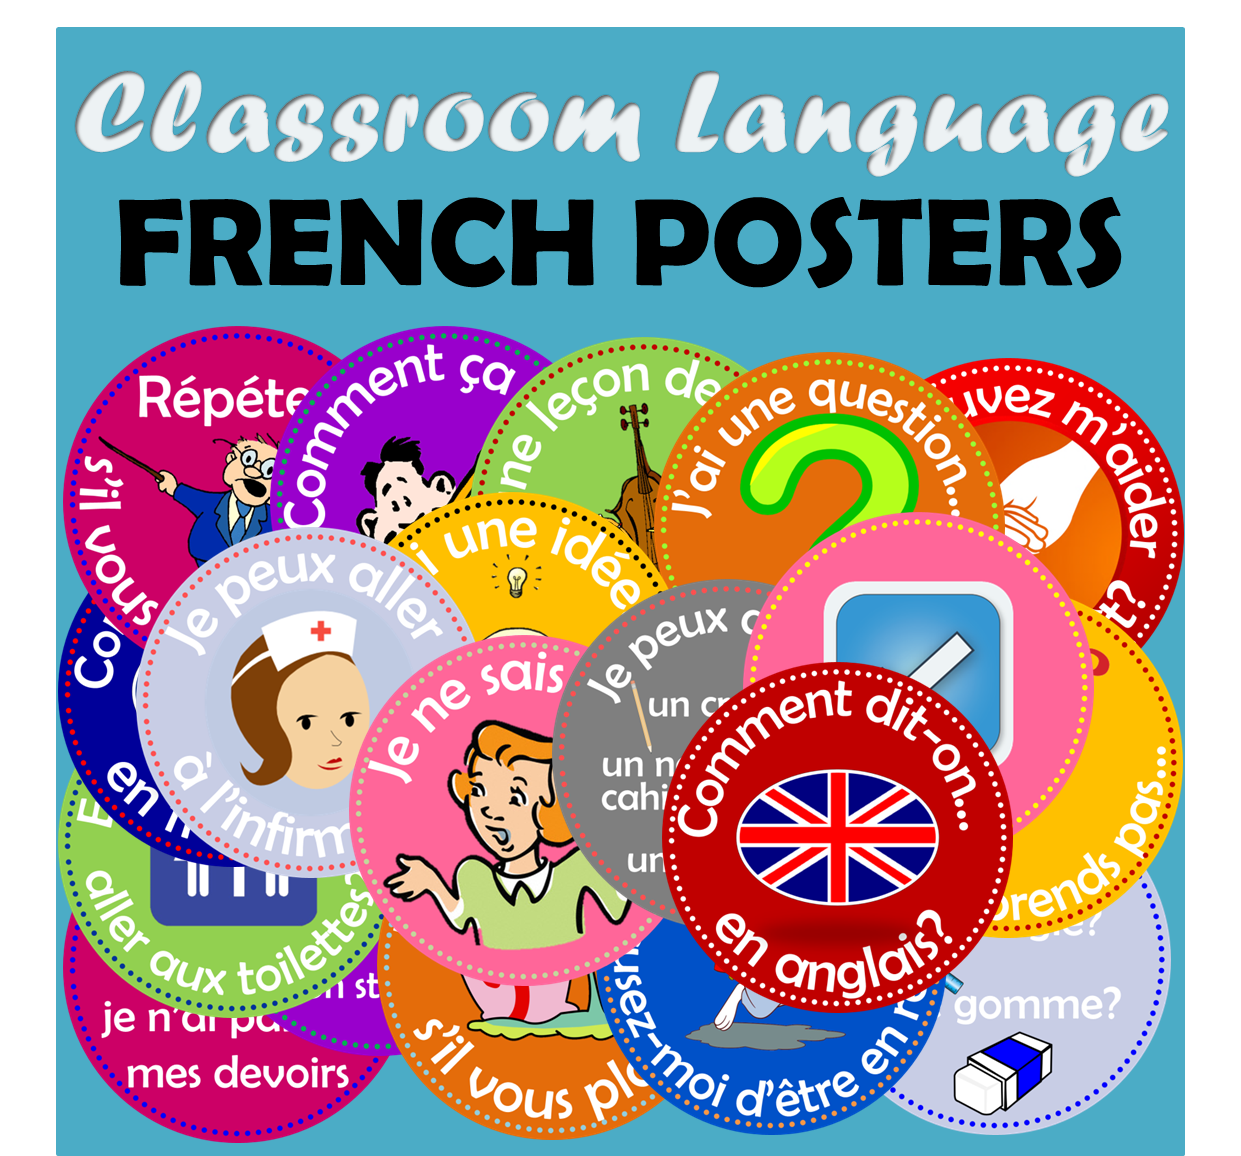 http://www.teacherspayteachers.com/Product/FRENCH-FLASHCARDS-CLASSROOM-LANGUAGE-363691